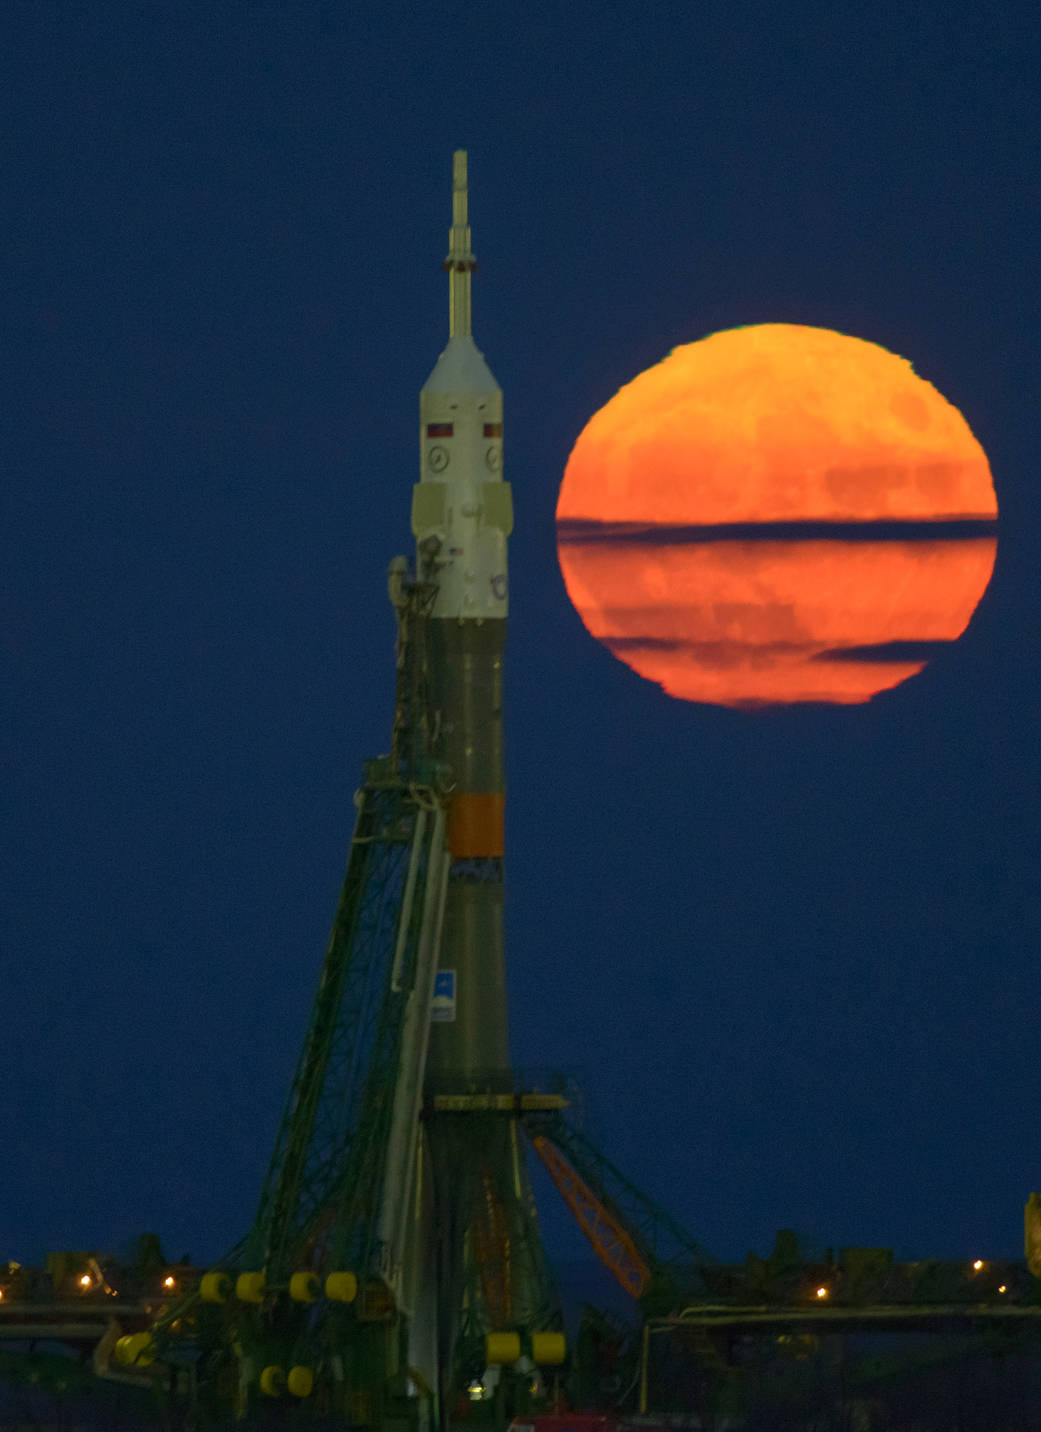 Moon rising at left and Soyuz rocket at launchpad